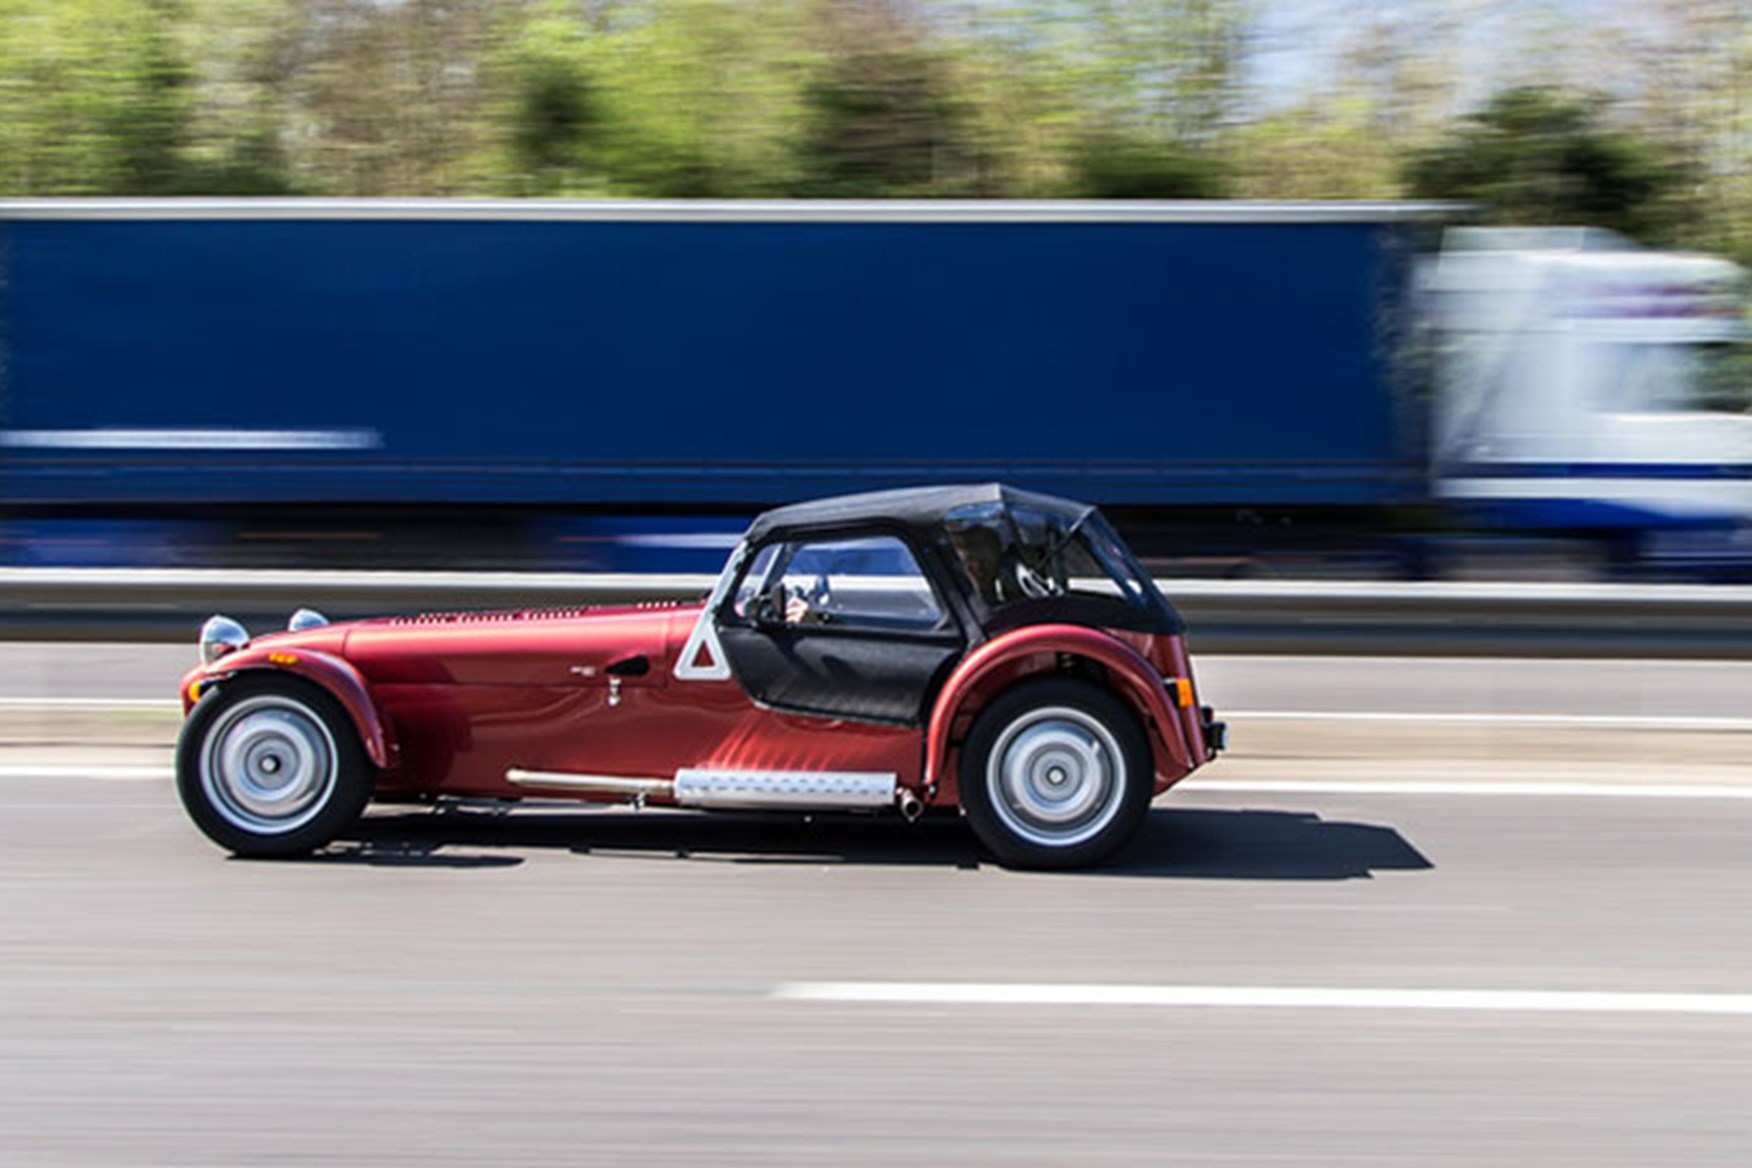 48_caterham?mode=max&quality=90&scale=down caterham seven 160 (2014) long term test review by car magazine caterham 7 wiring diagram at panicattacktreatment.co